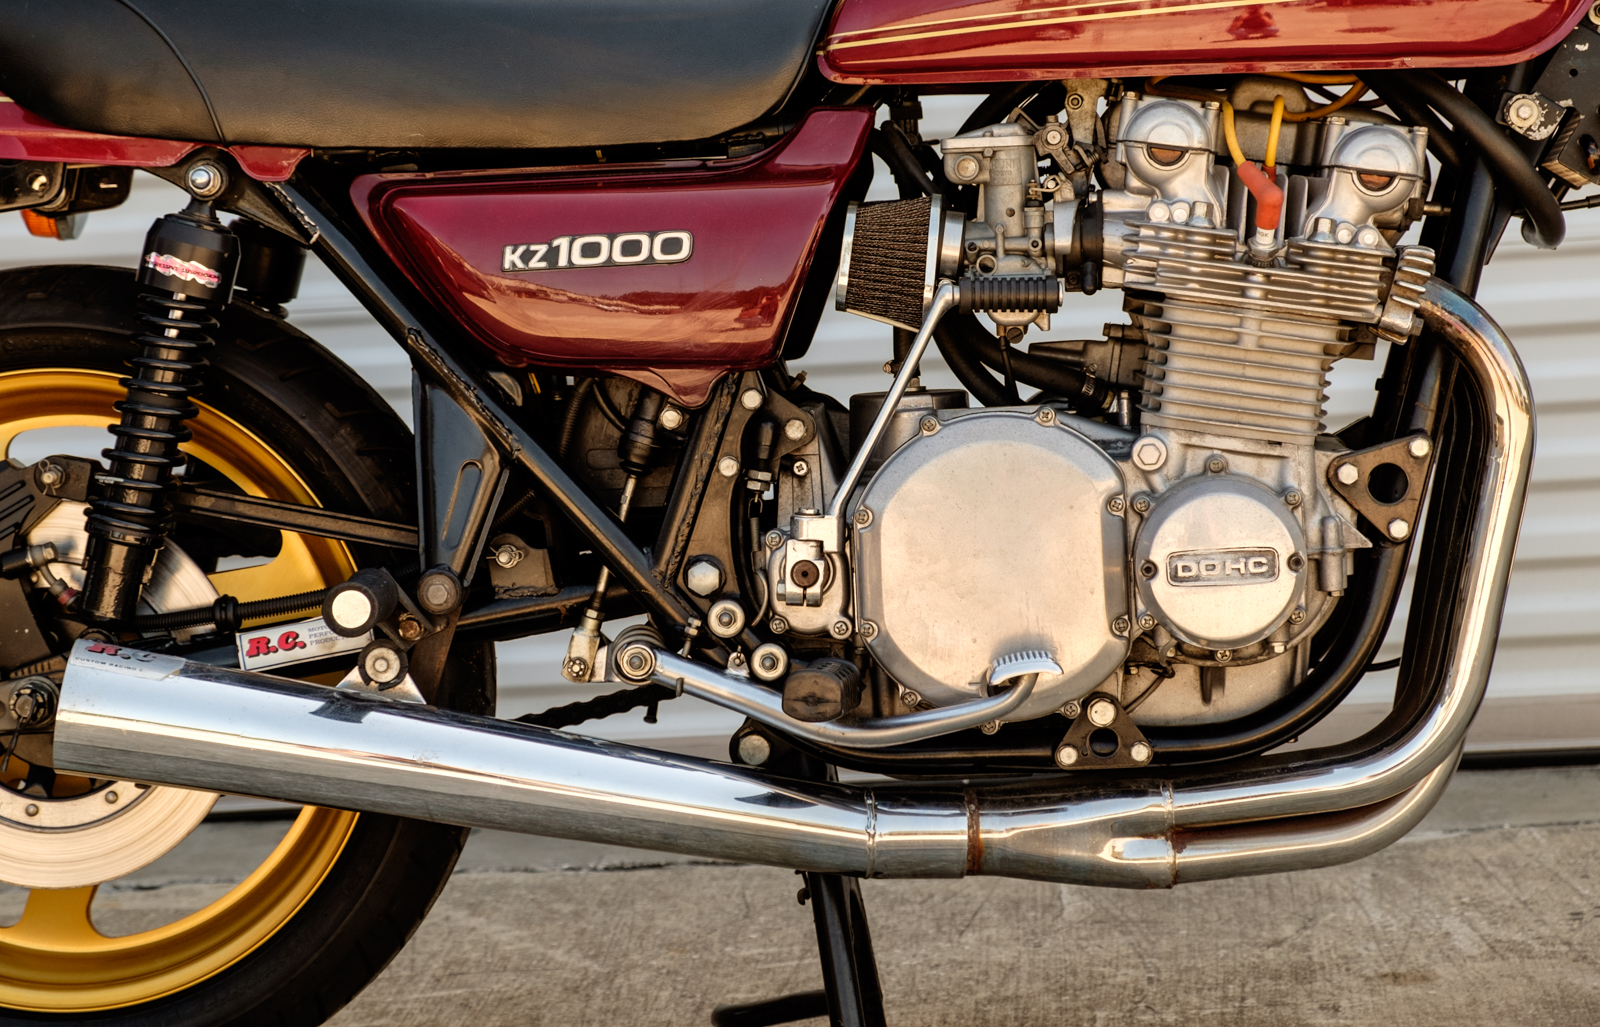 Bid on a 1977 Kawasaki KZ1000 at Riding Into History